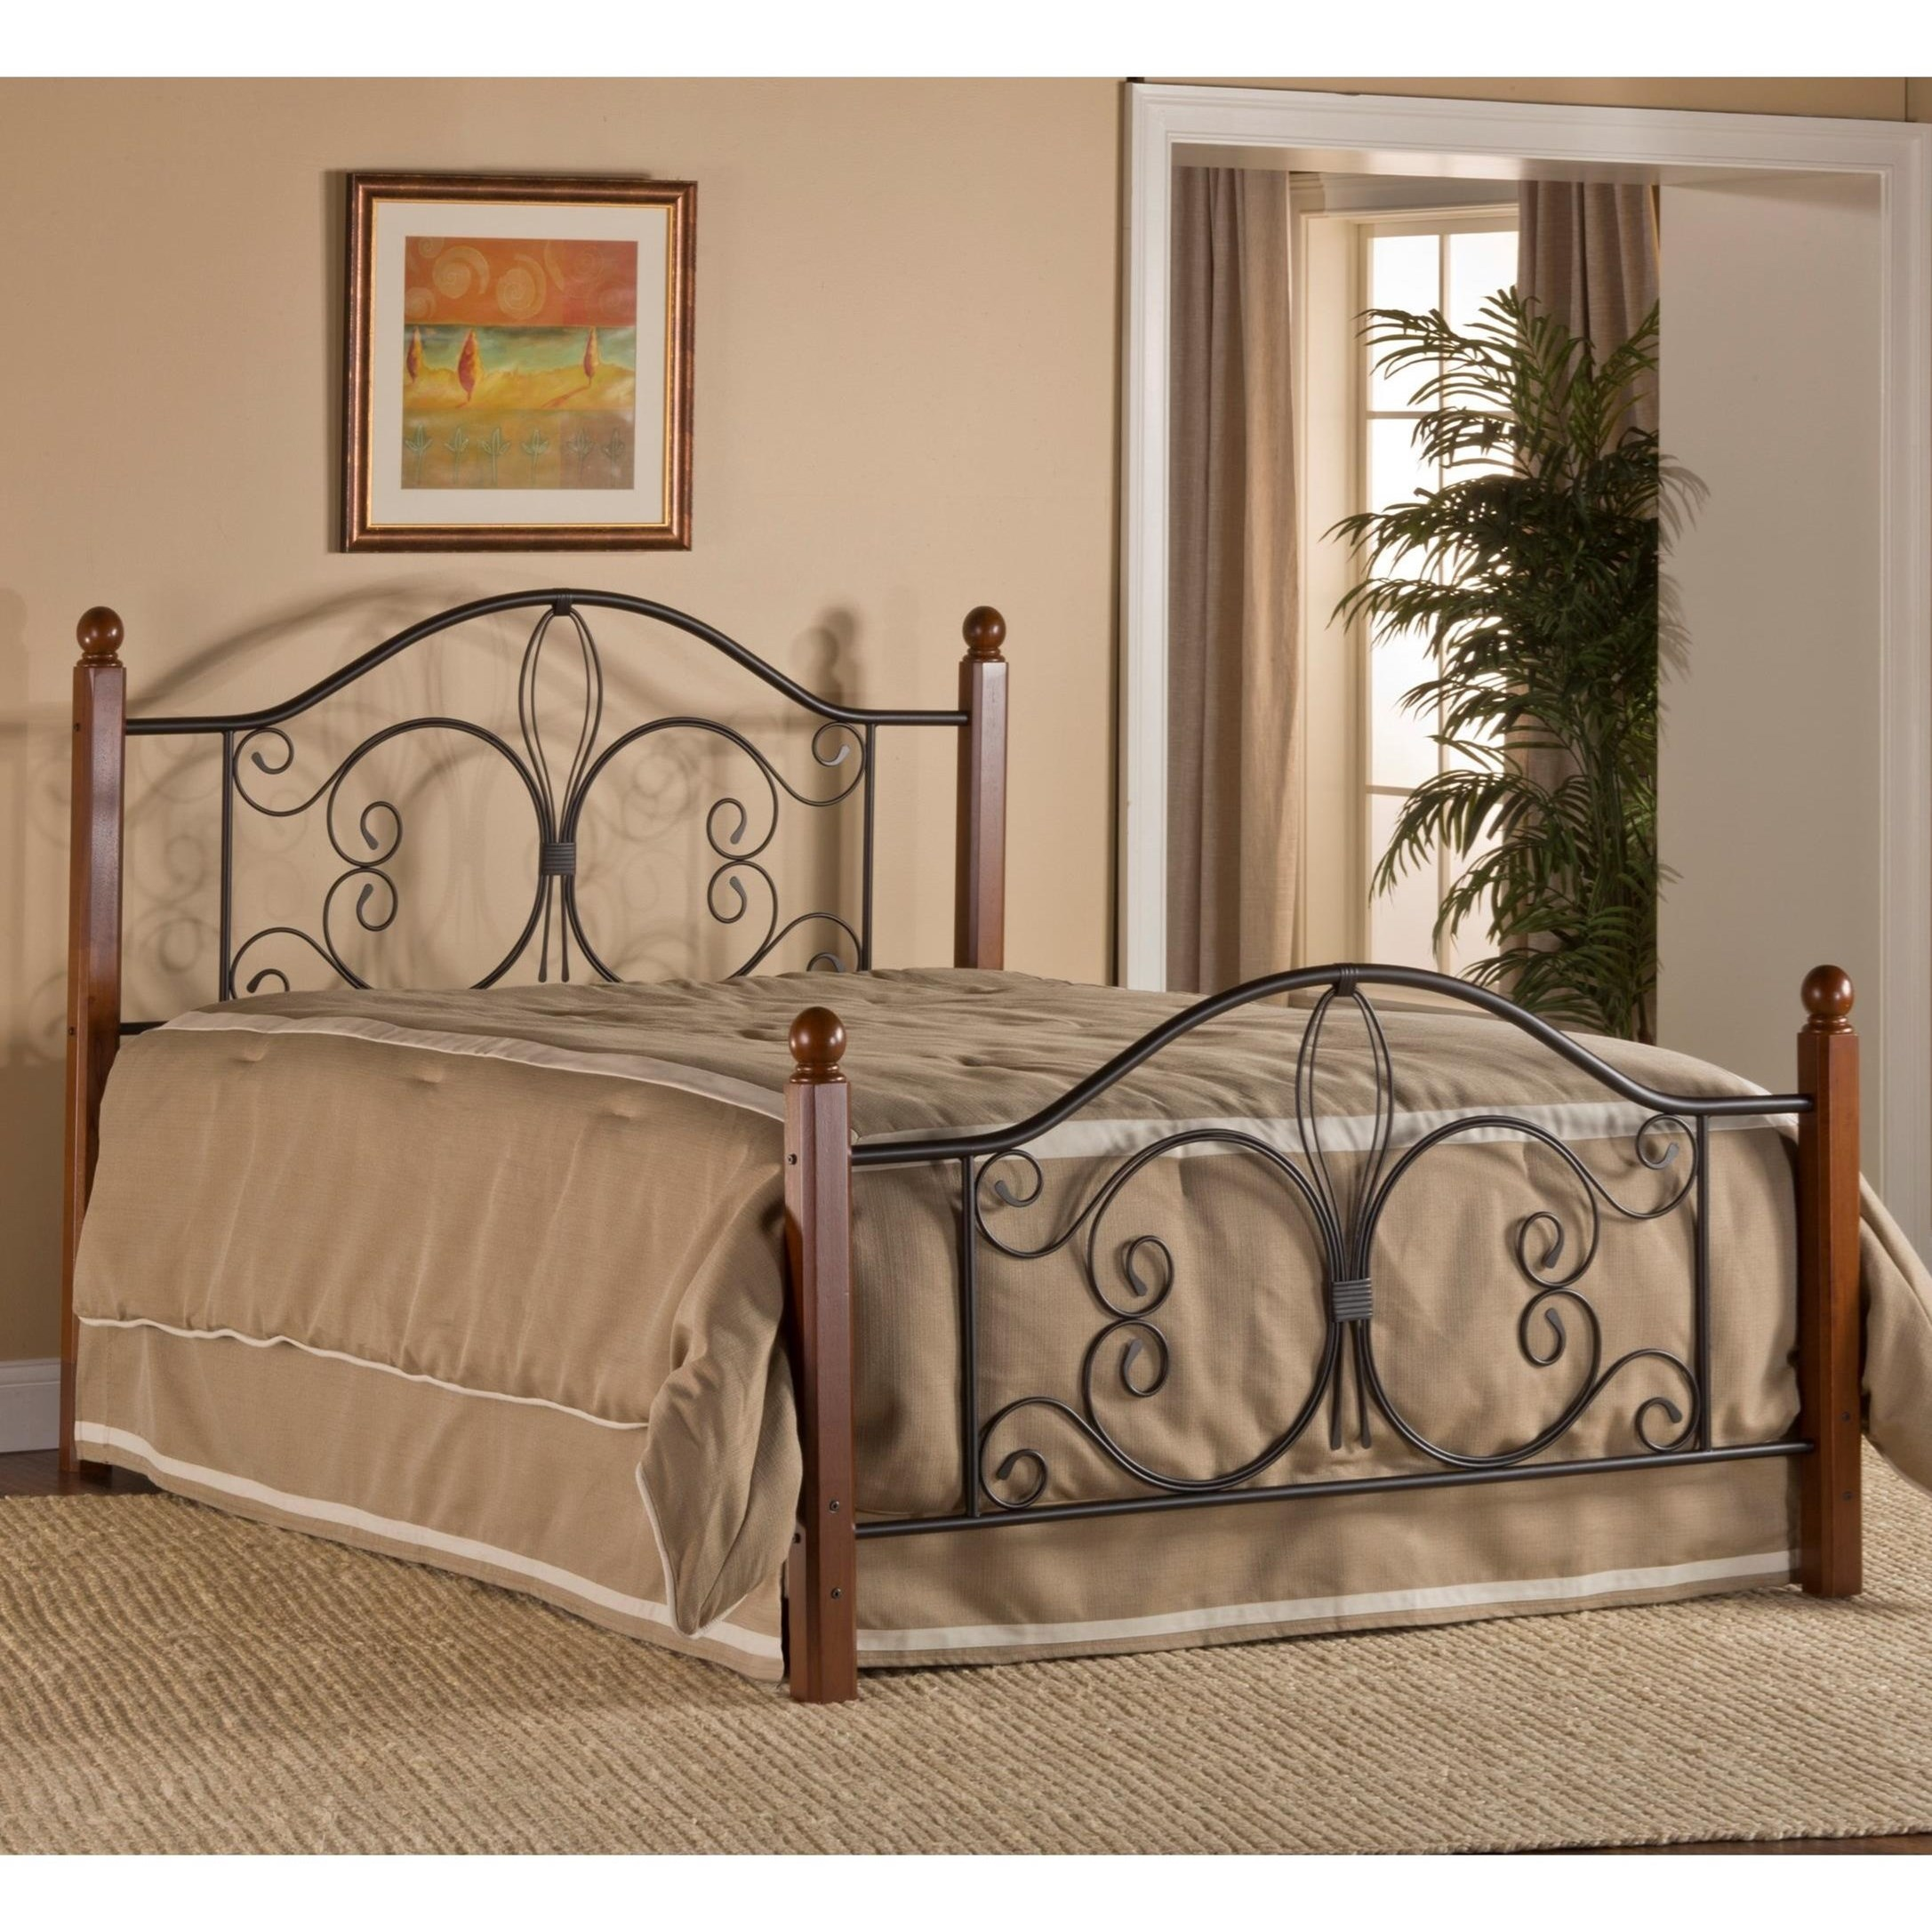 Metal Beds King Milwaukee Wood Post Bed by Hillsdale at Steger's Furniture